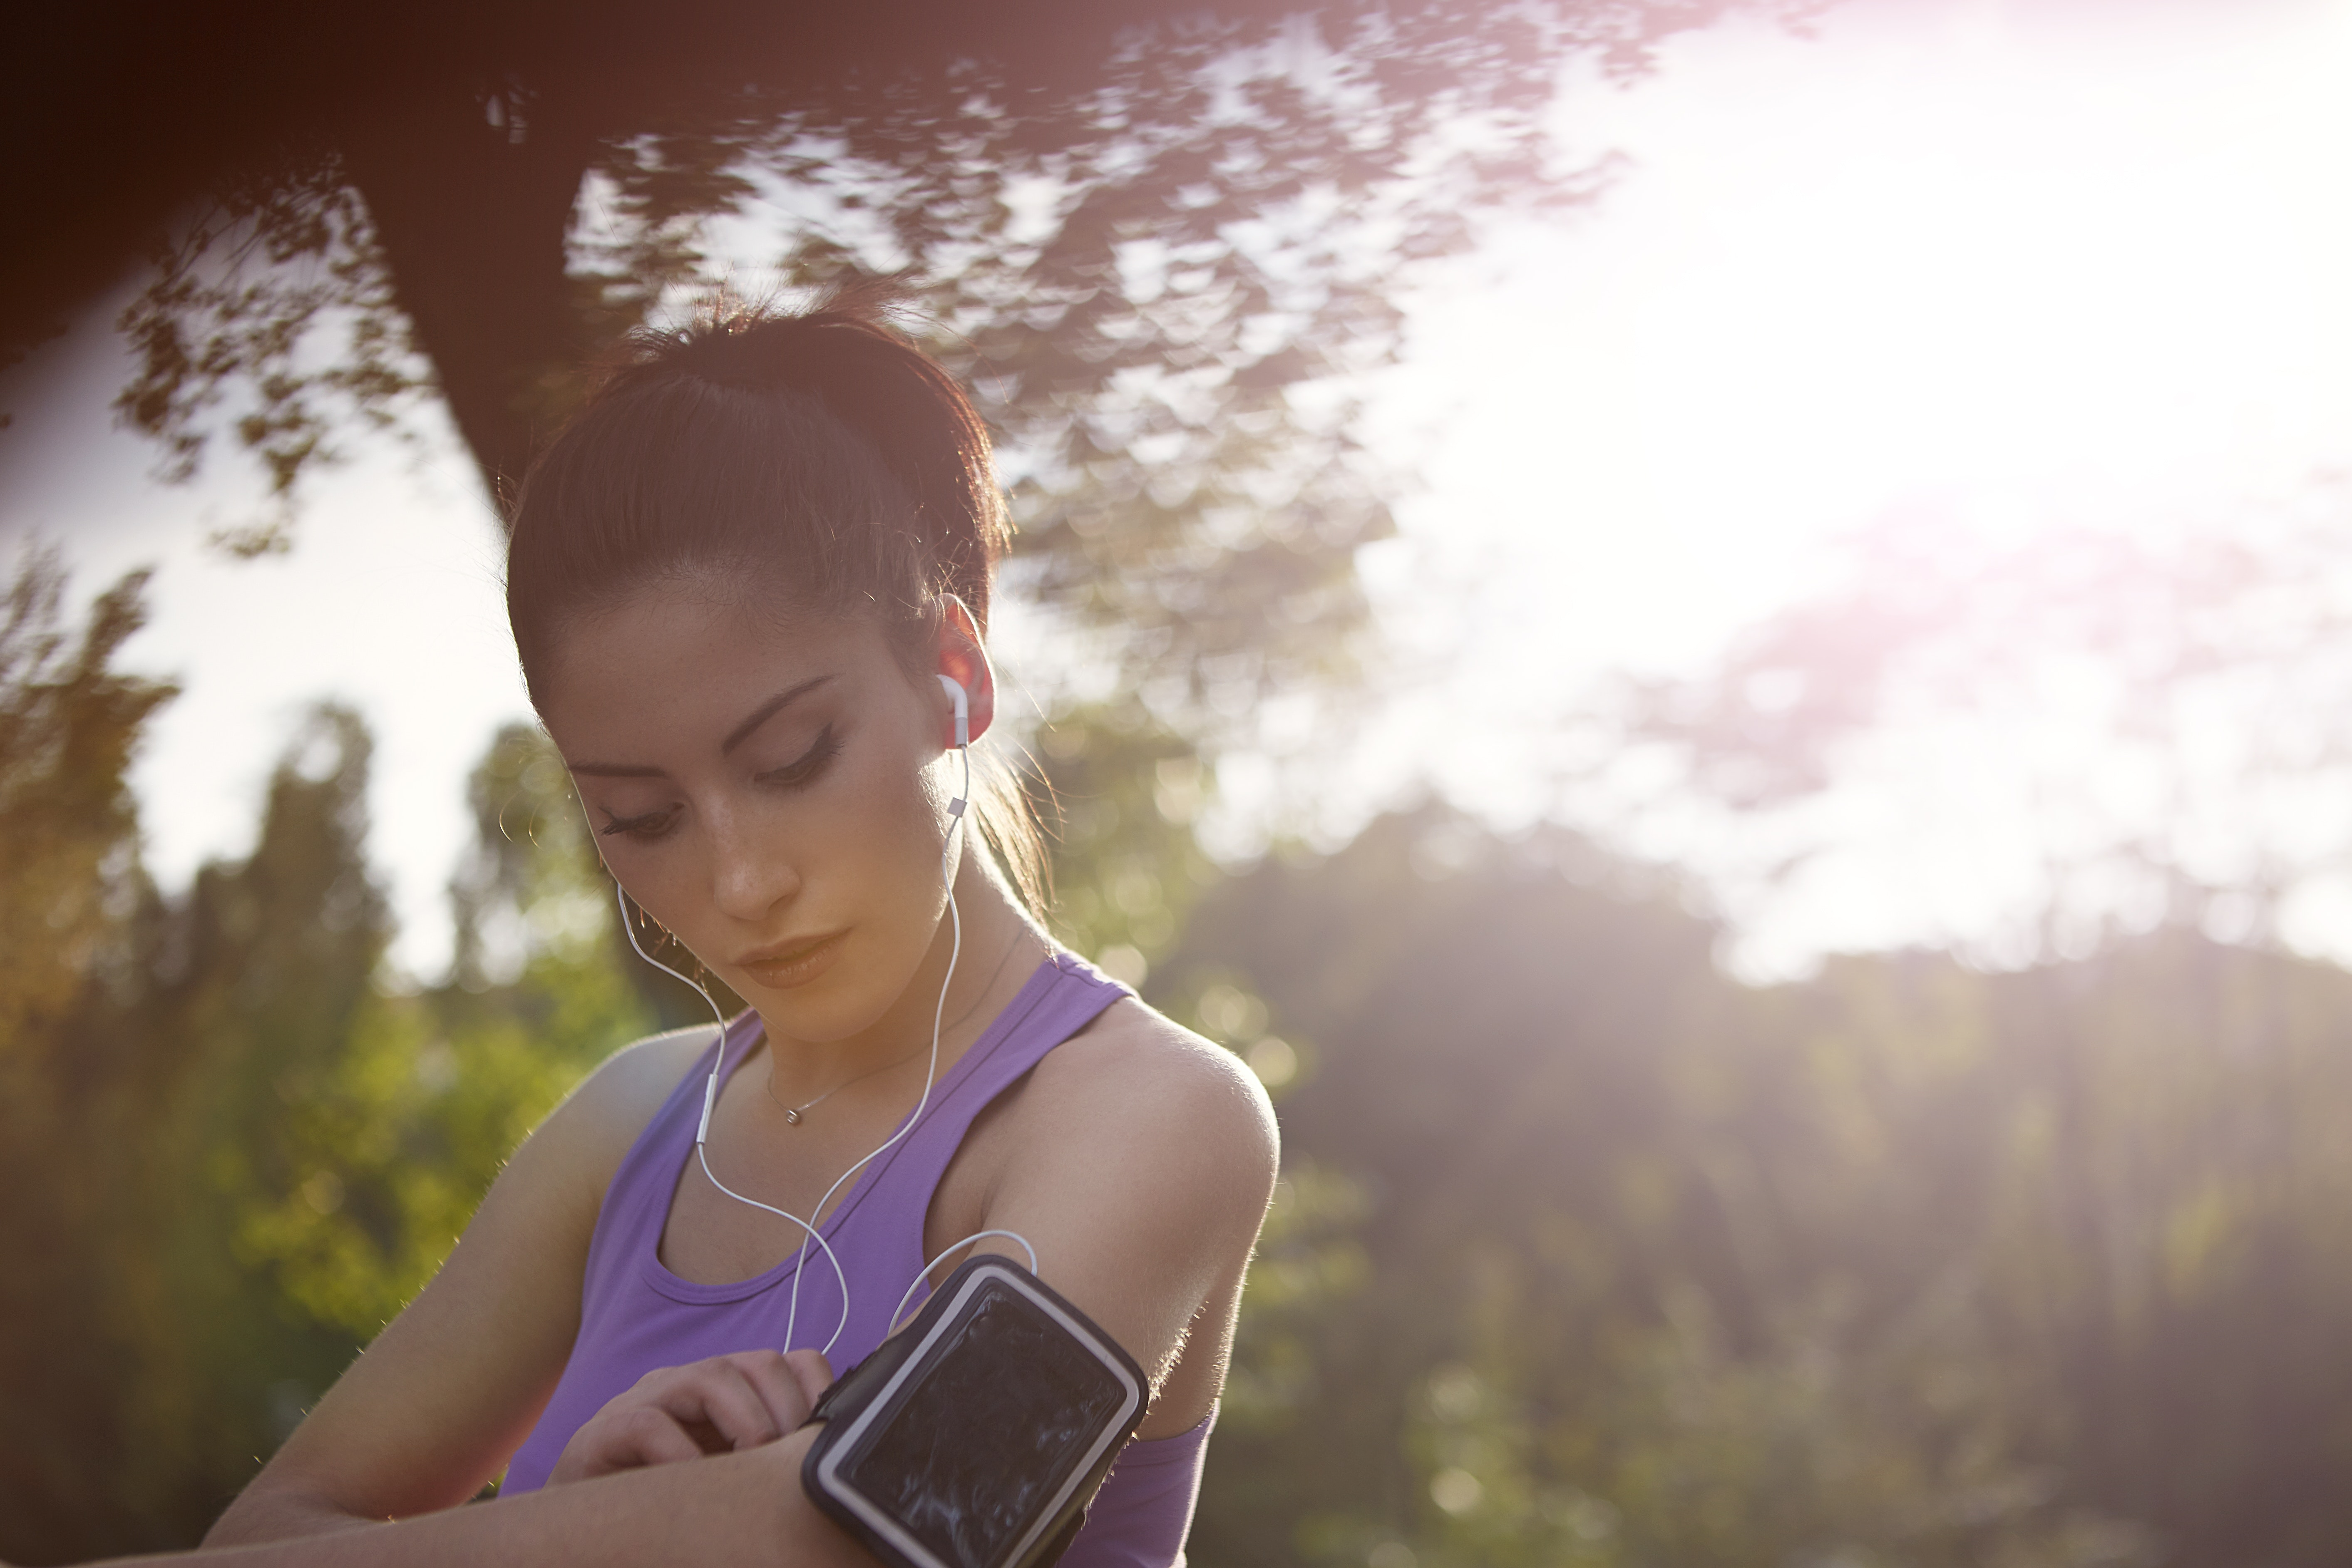 young-sportswoman-listening-to-music-in-park-3776837